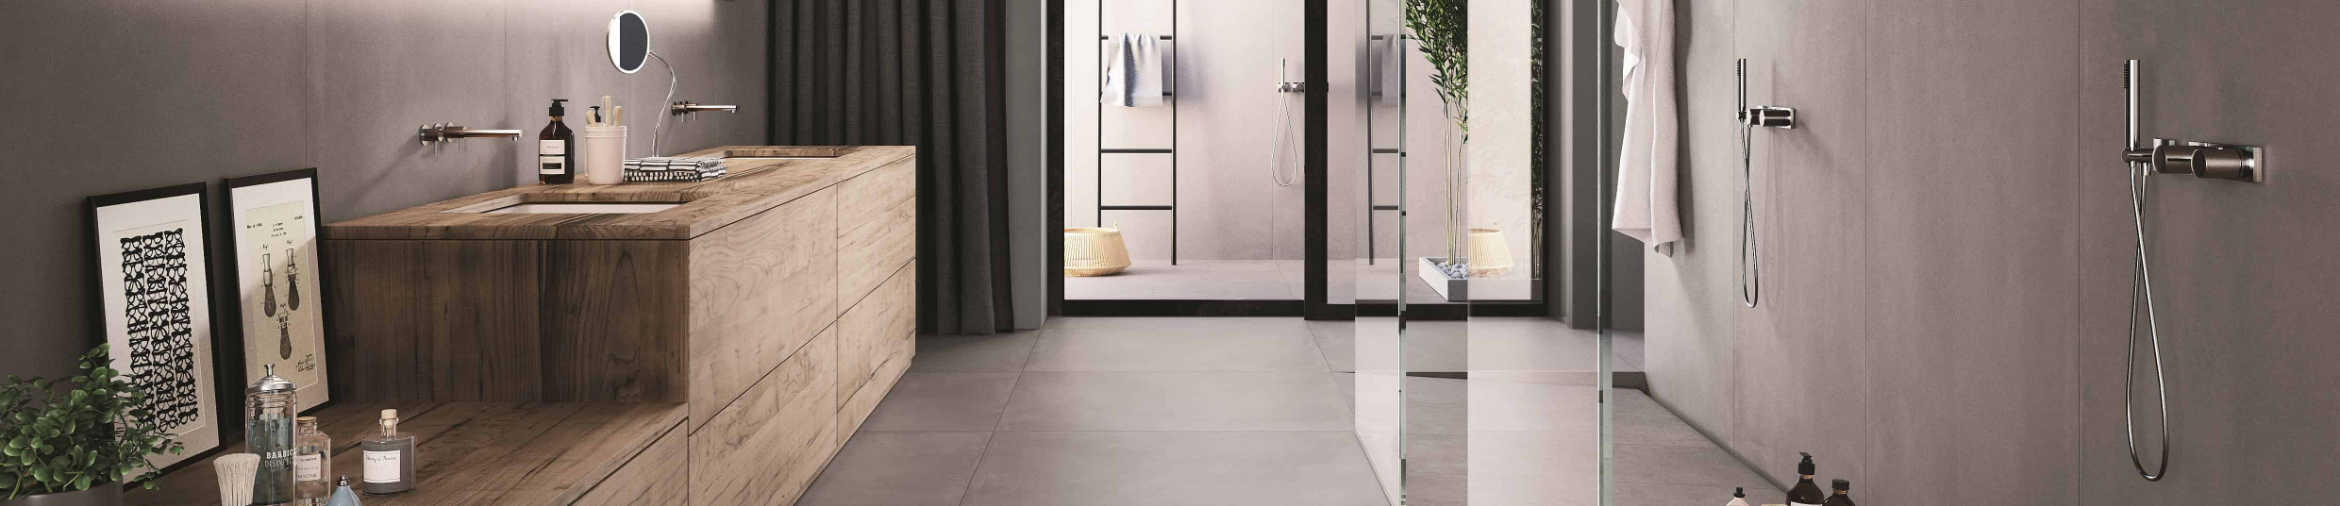 Kitchen Tiles Osborne Park kitchen and bathroom tiles perth | osborne ceramic tile centre